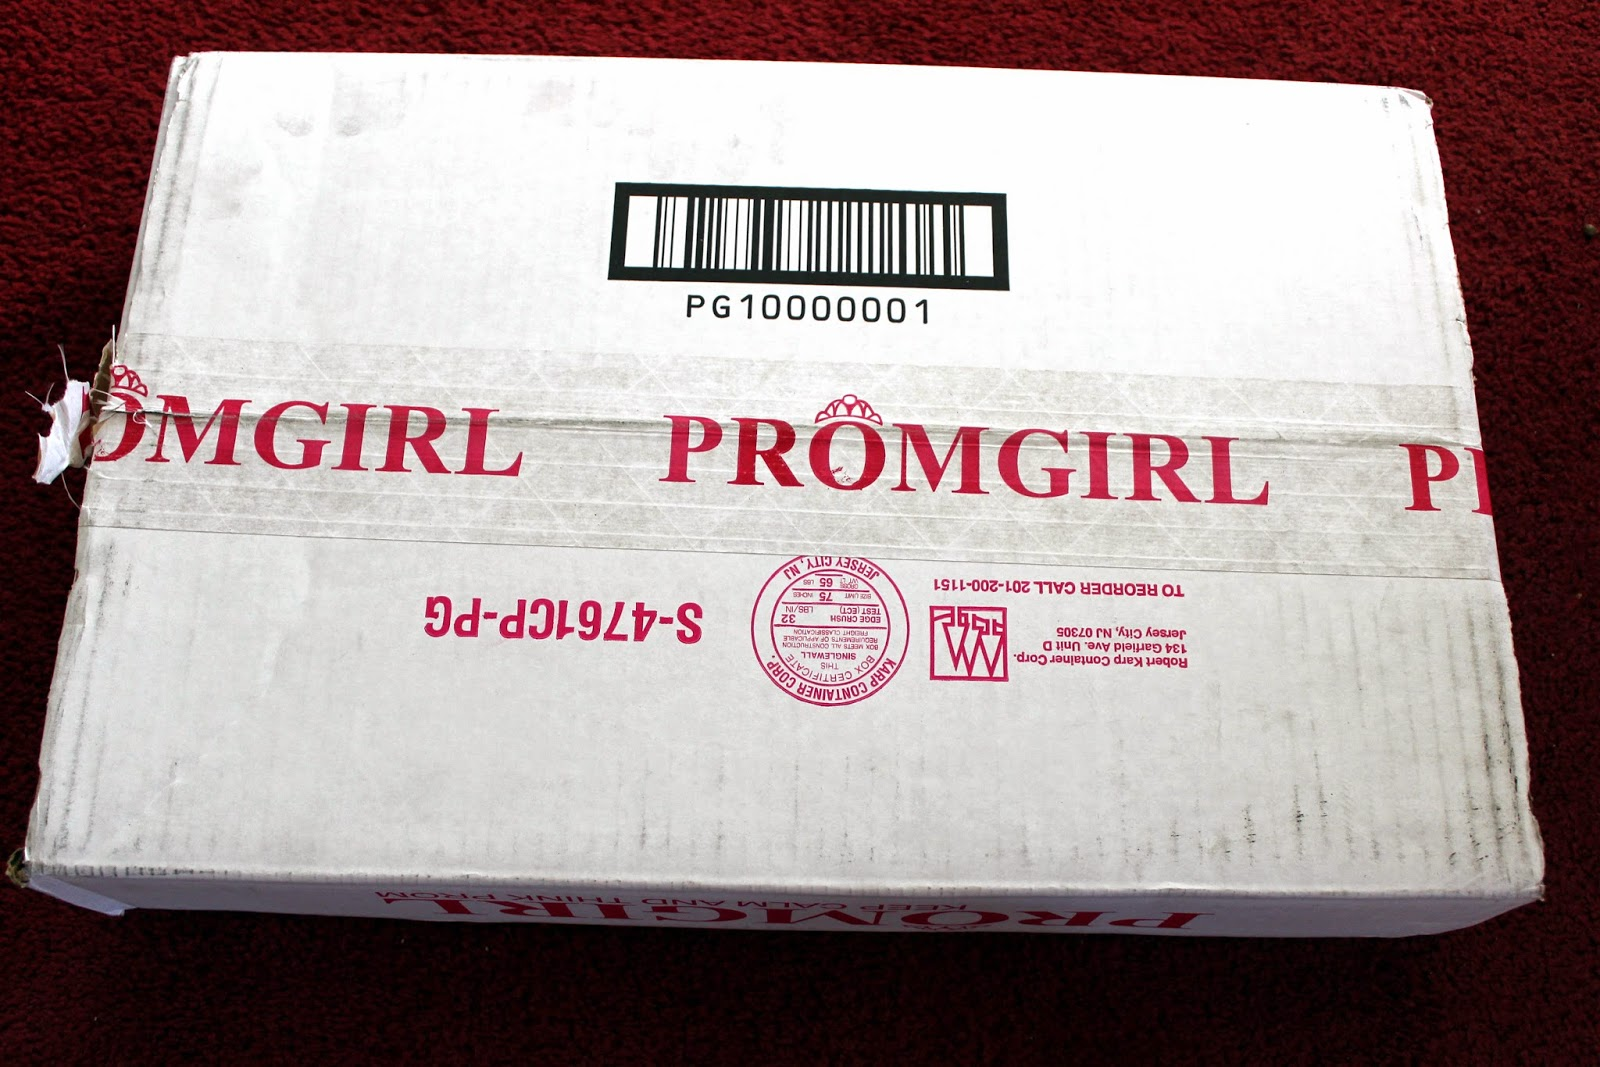 Promgirl review